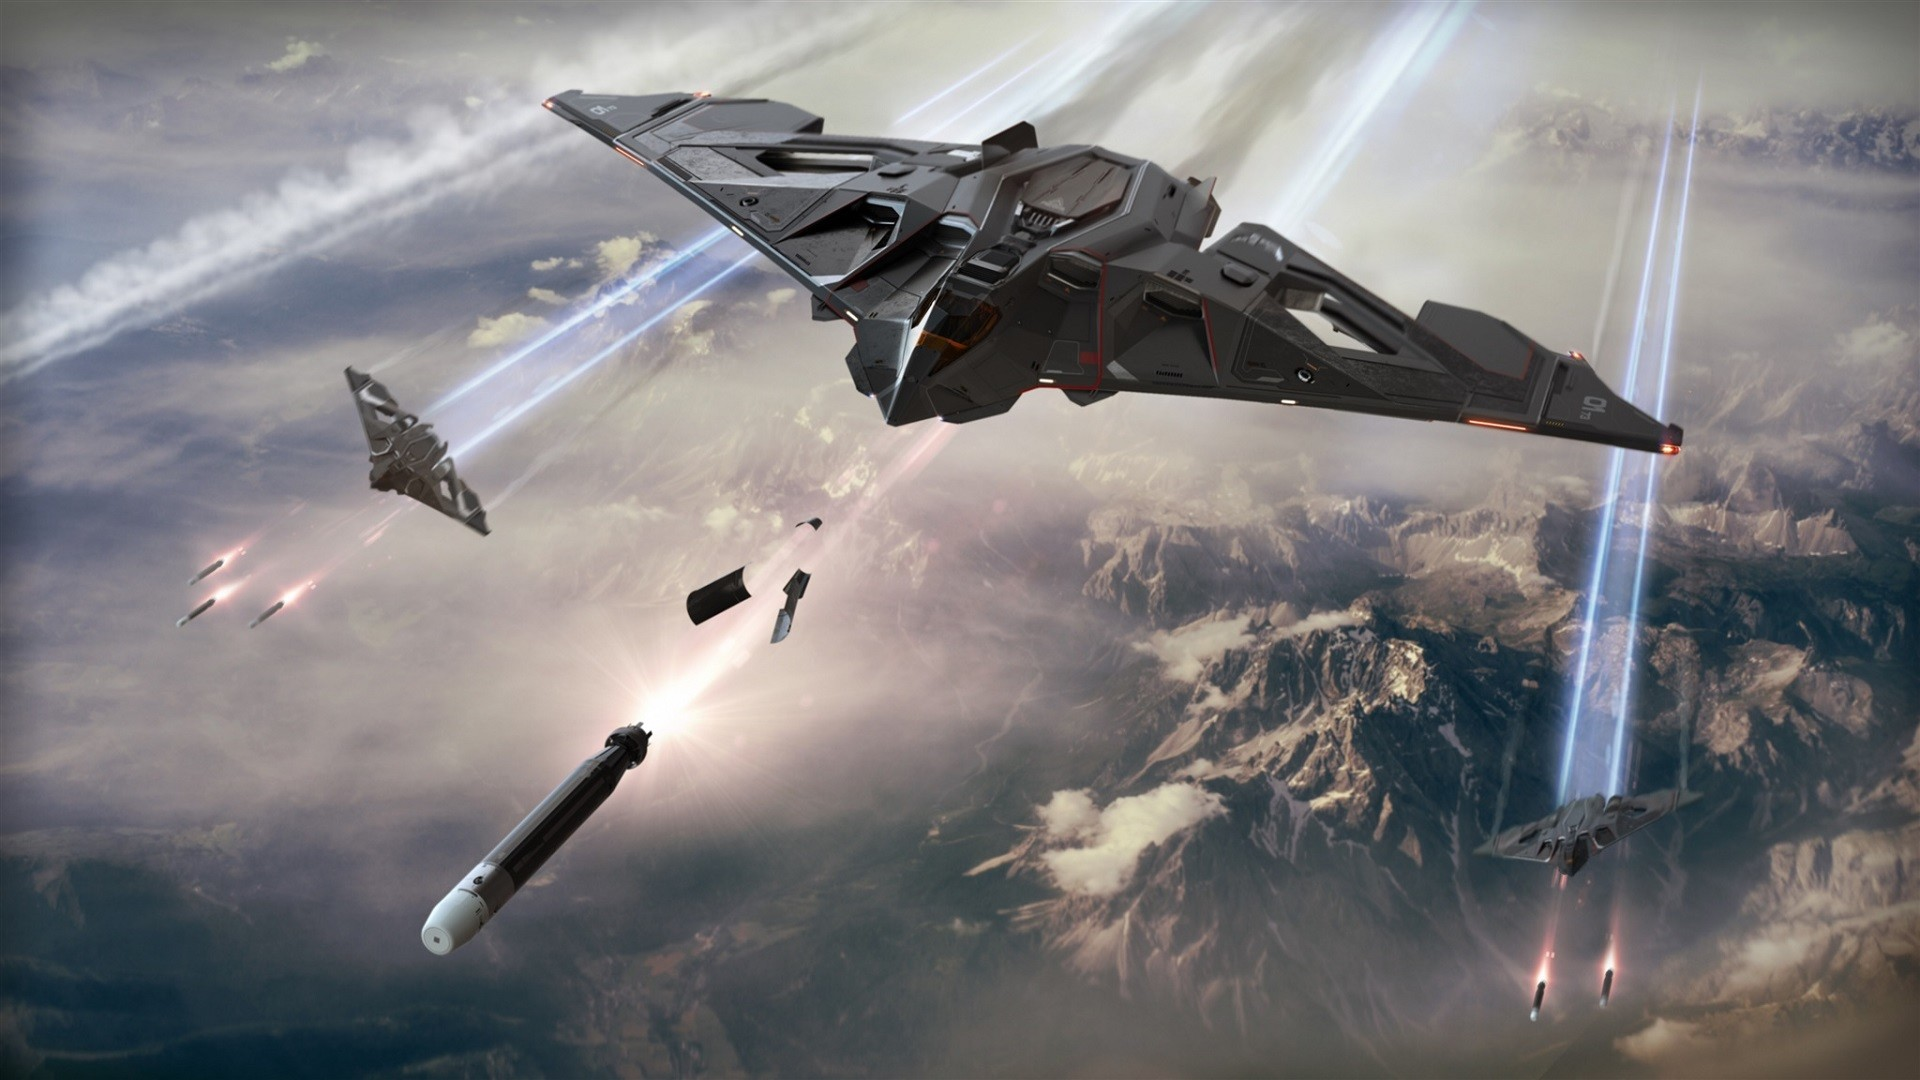 Crytek sues Star Citizen studio over breach of contract and copyright infringement